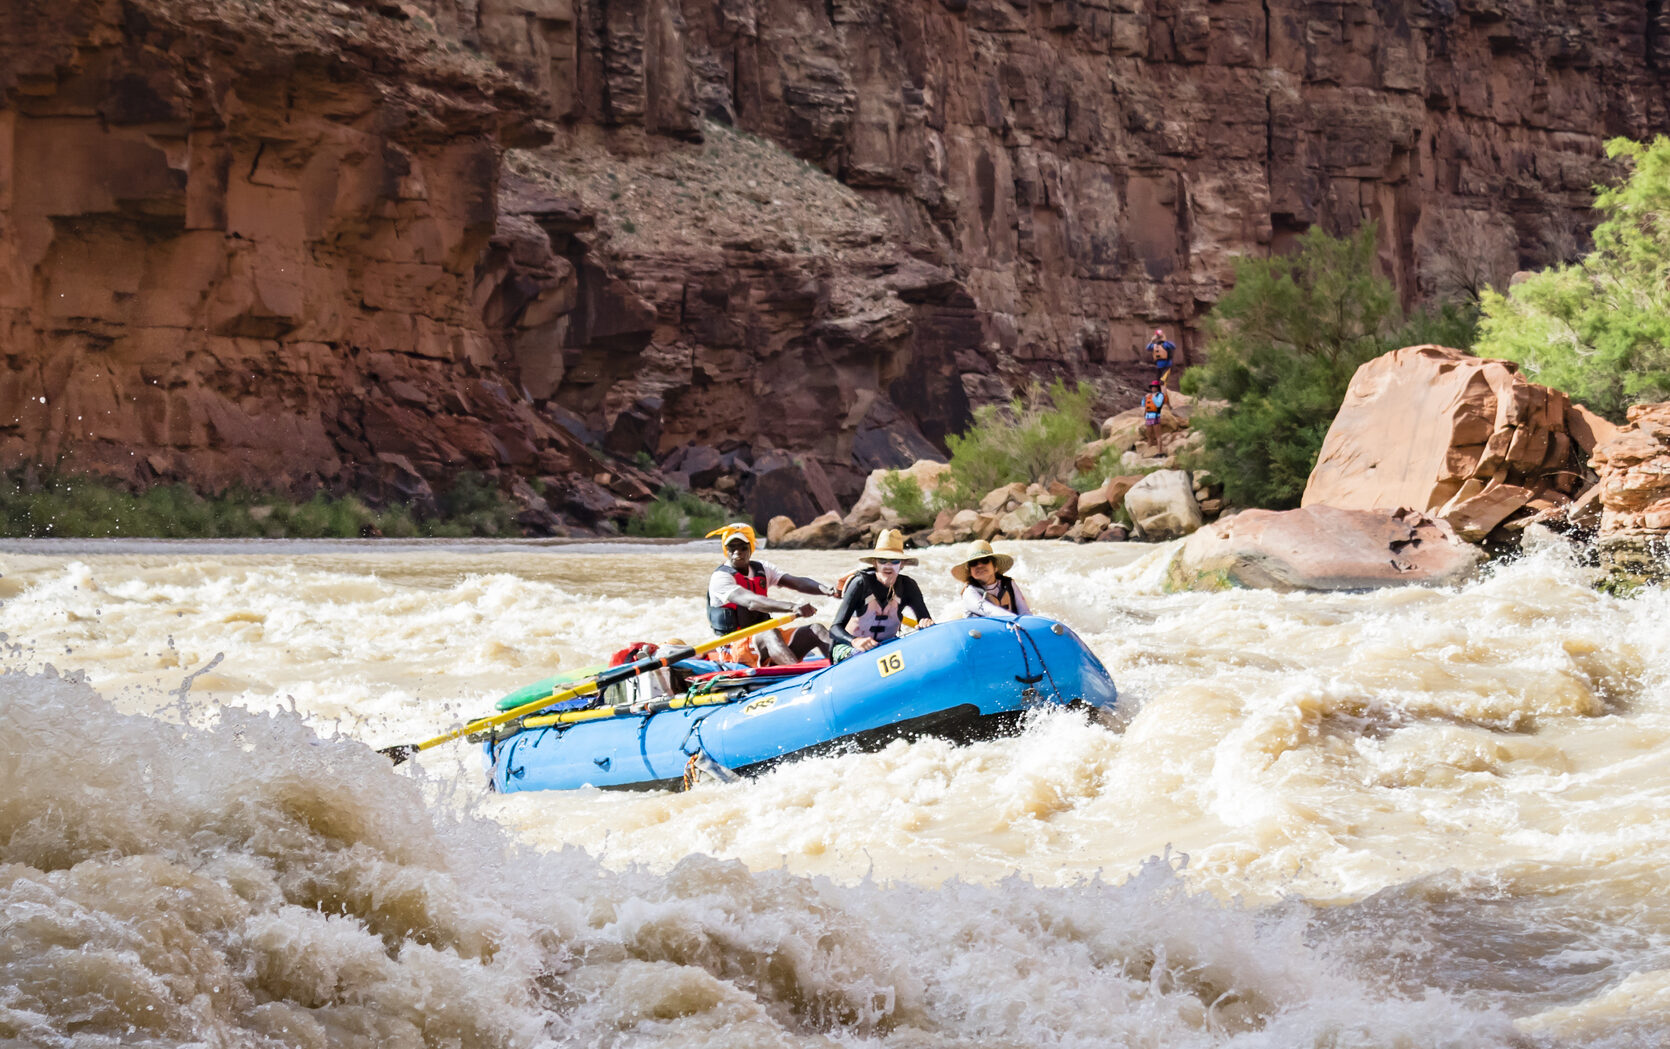 The 10 Best Places To Go Whitewater Rafting Around The World Mapquest Travel